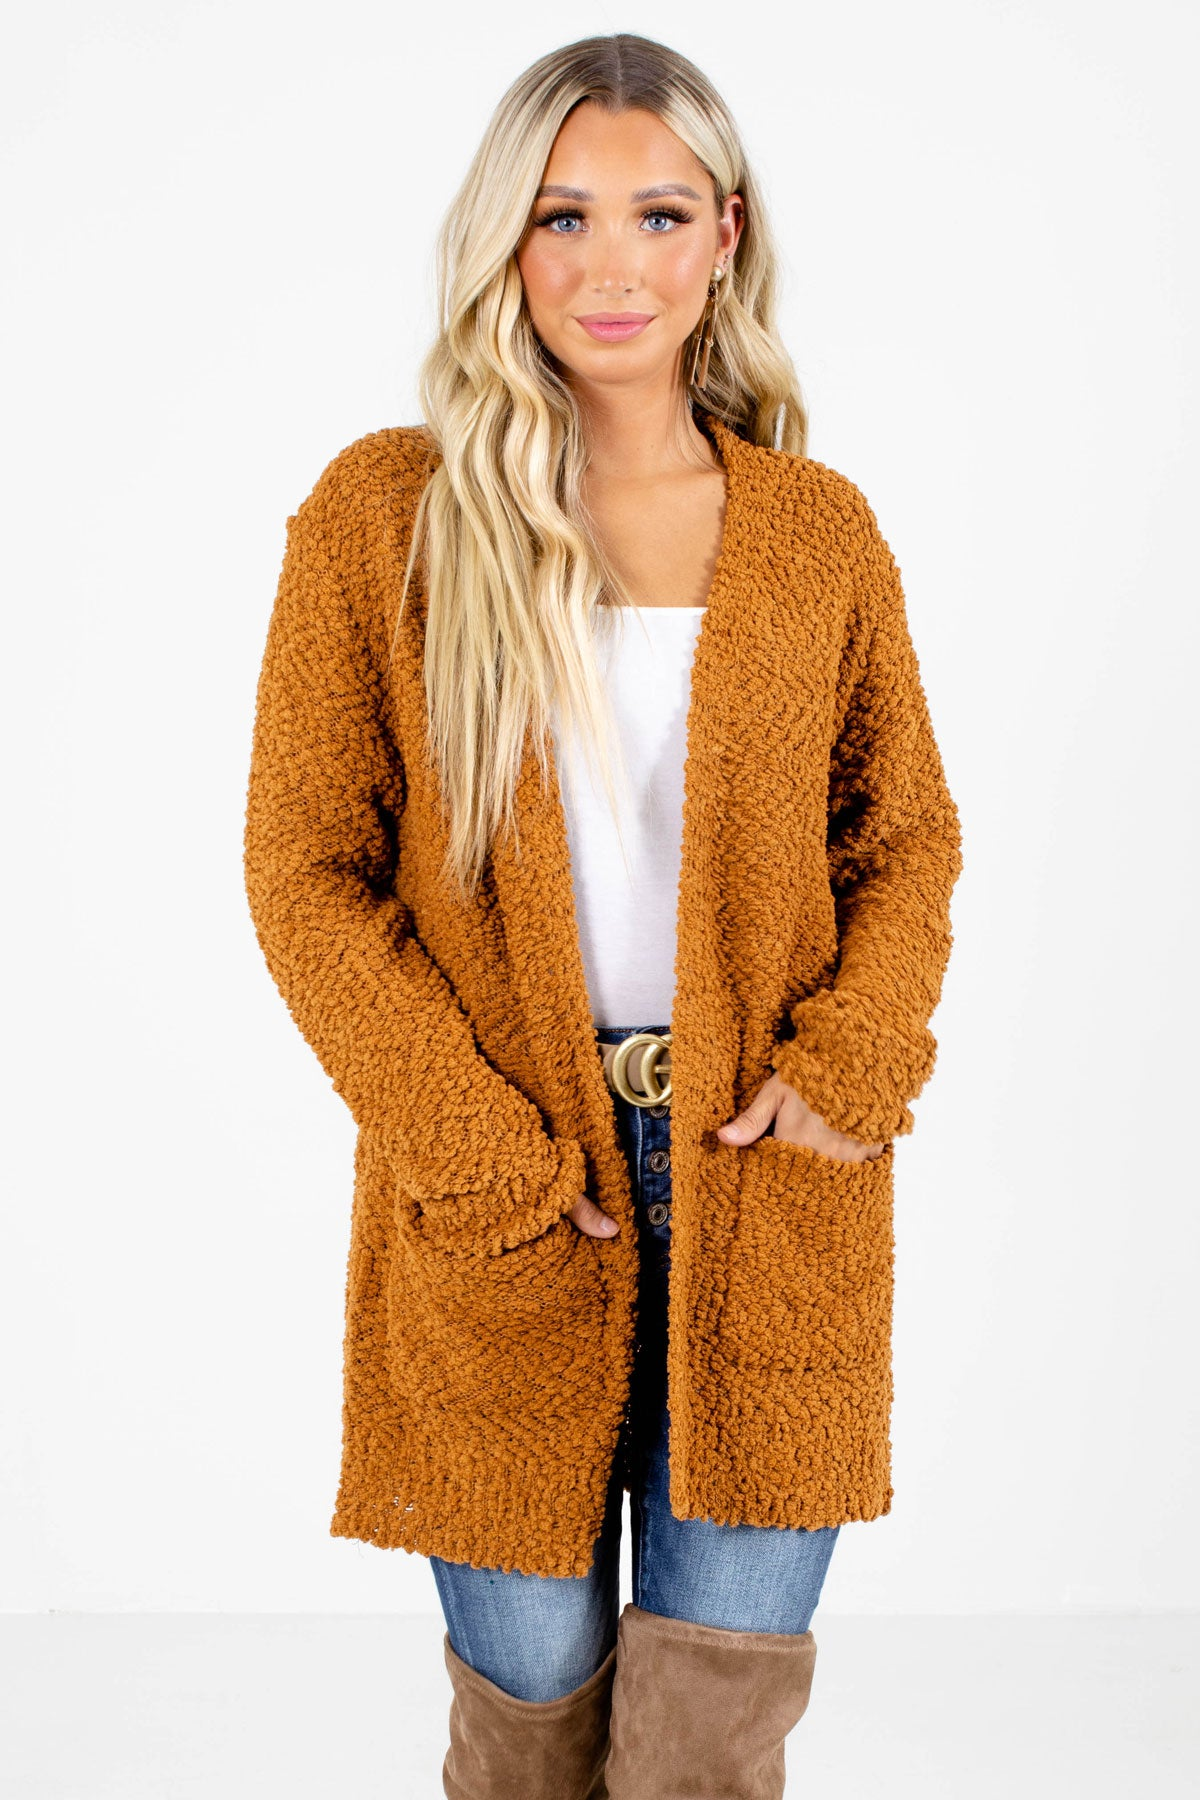 Orange Popcorn Knit Boutique Cardigans for Women